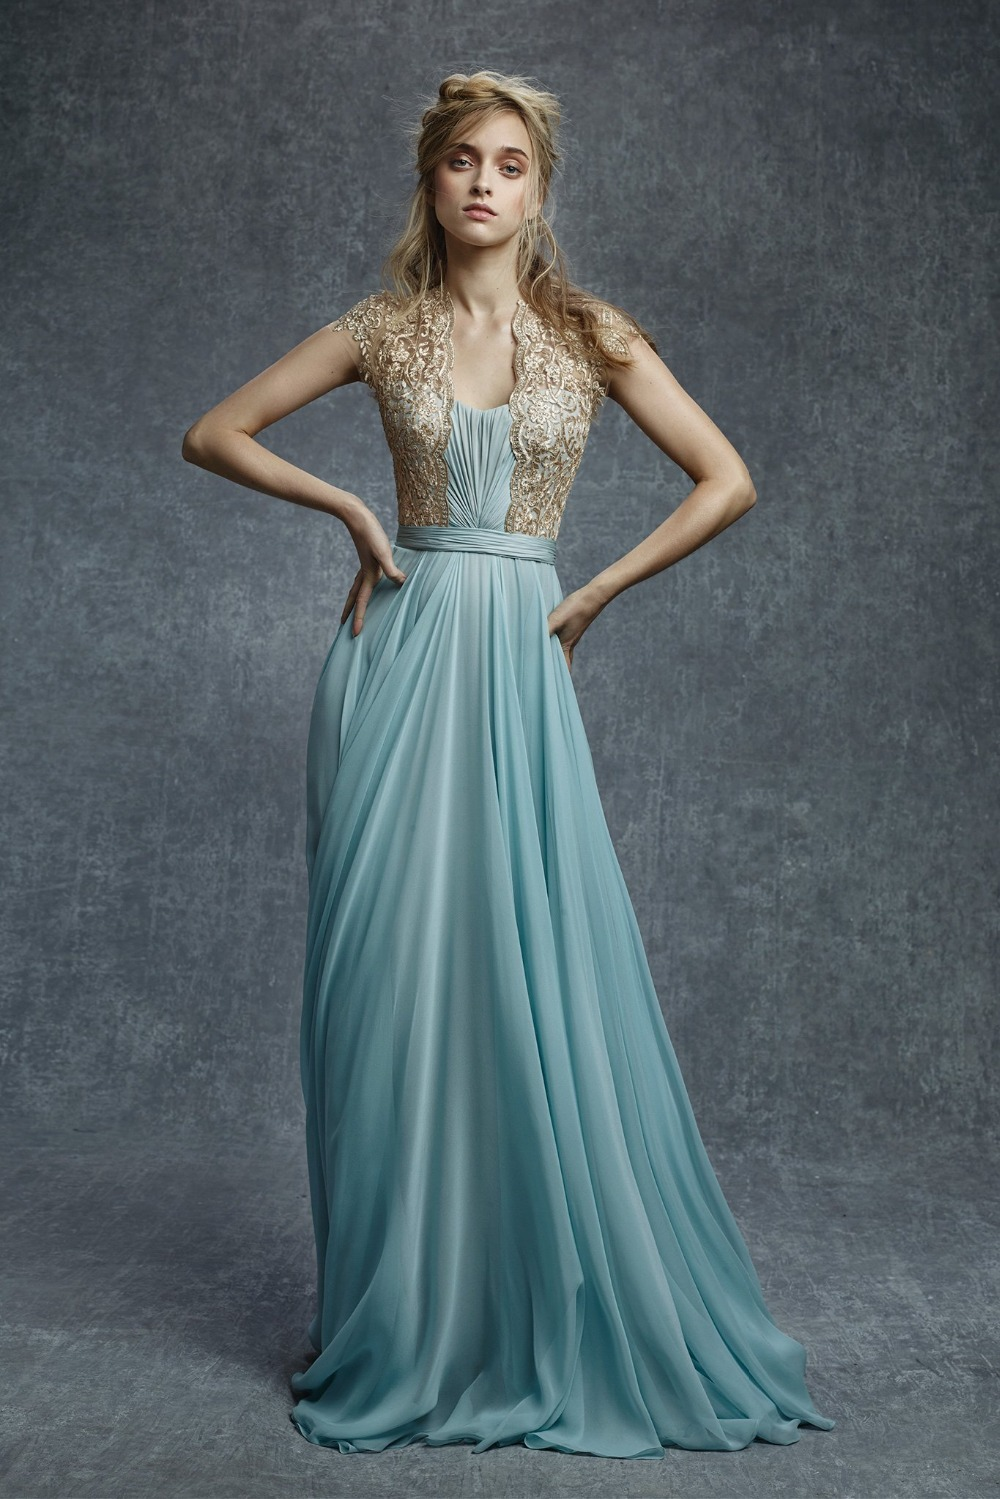 Blue and Gold Ball Dress | Dress images